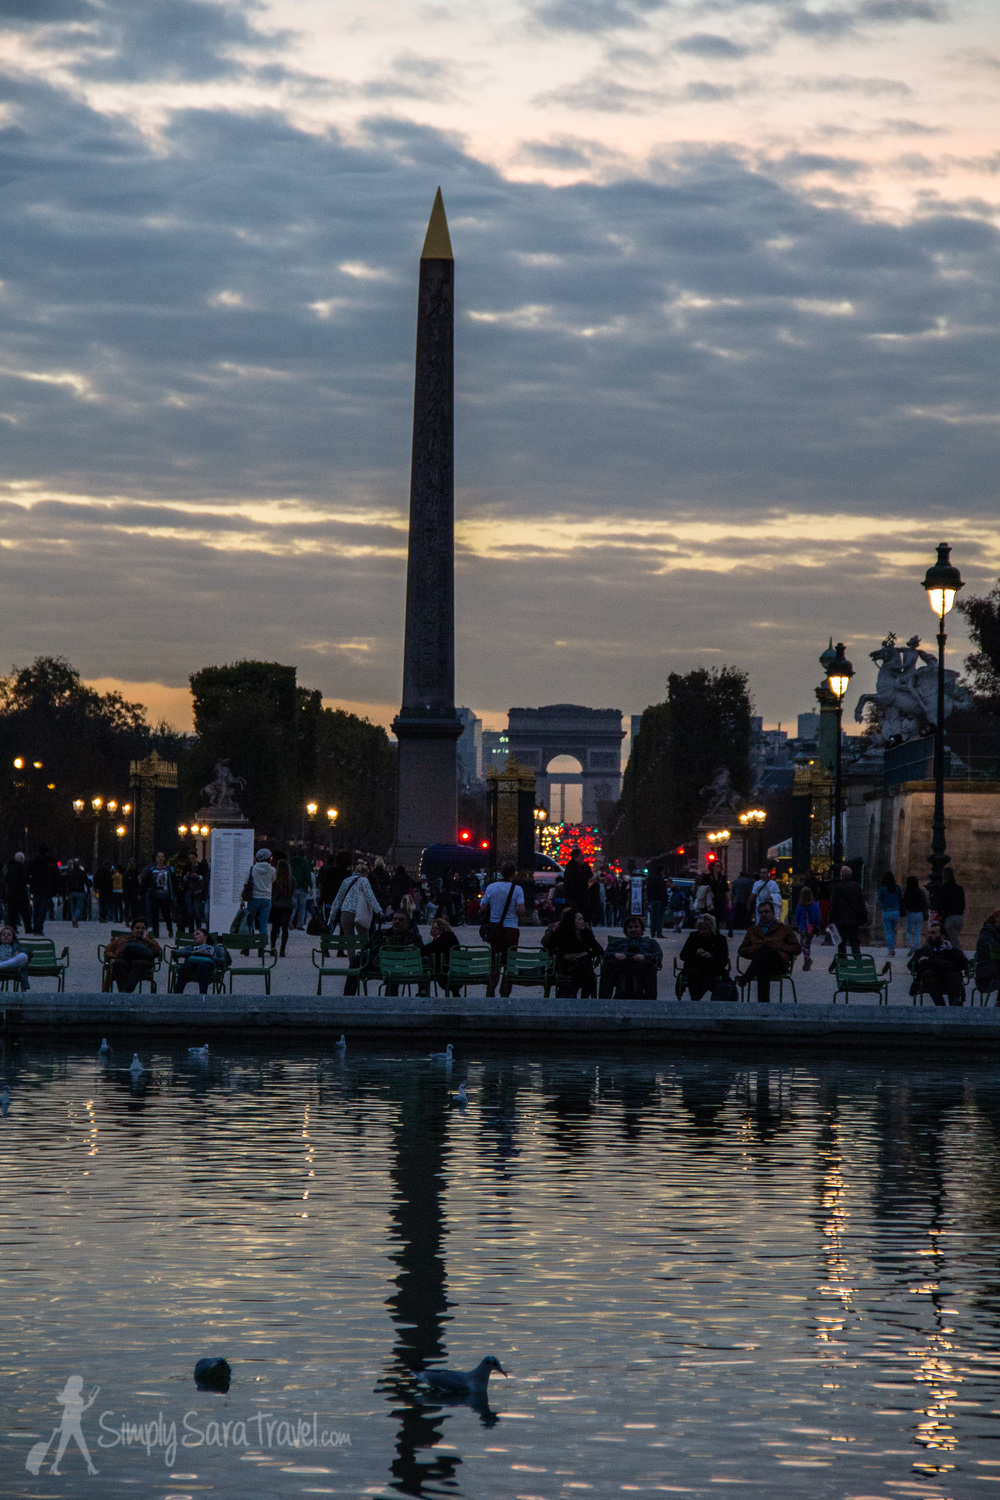 Evening settles in at Jardin des Tuileries with Arc de Triomphe in the background